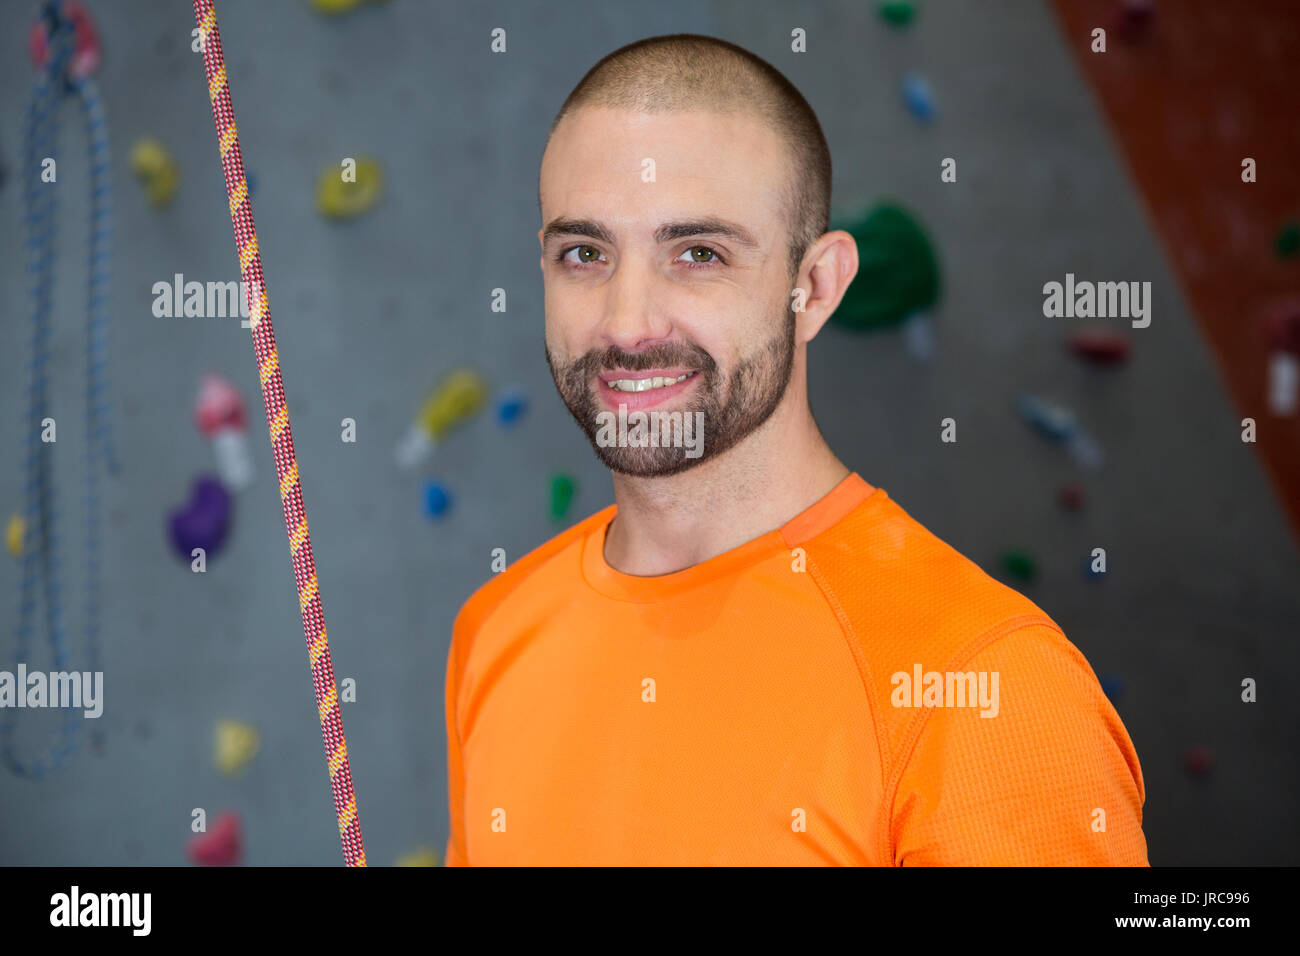 Portrait of trainer standing with rope in fitness studio - Stock Image